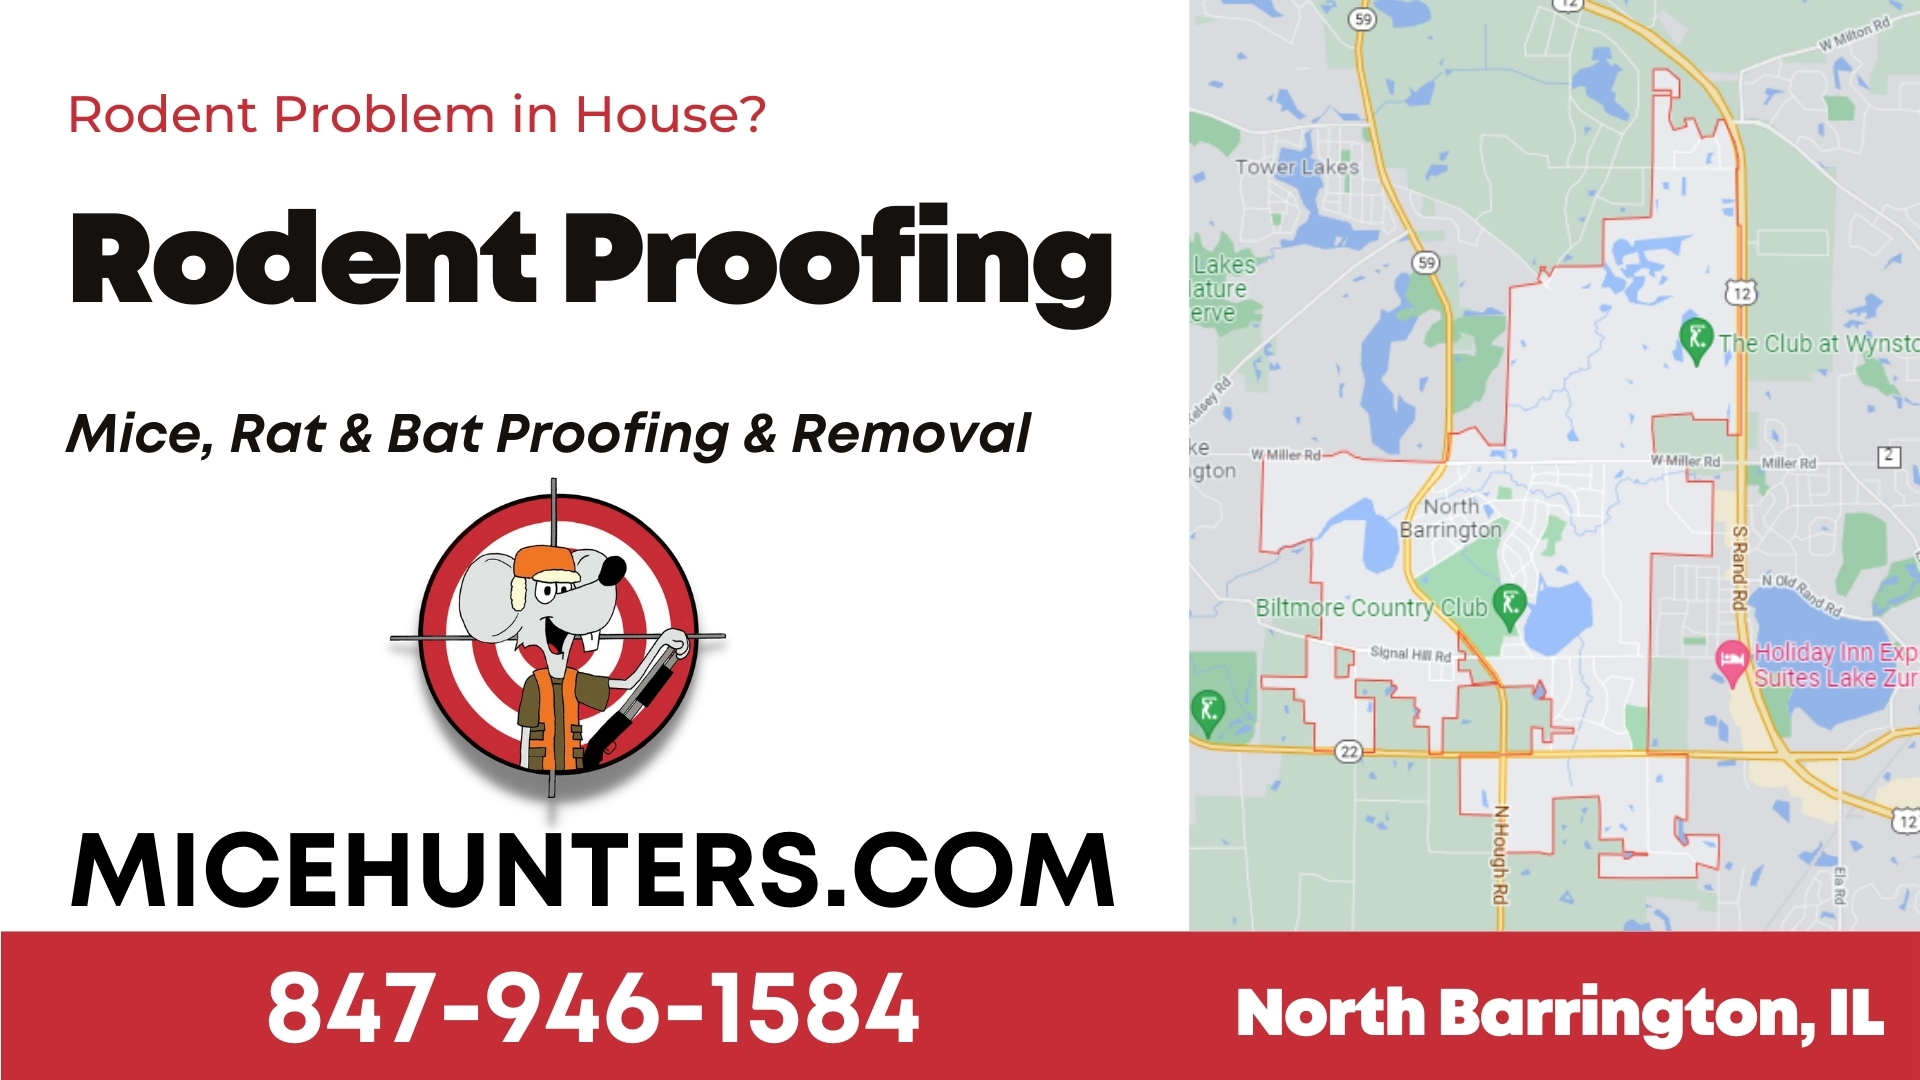 North Barrington Rodent and Mice Proofing Exterminator